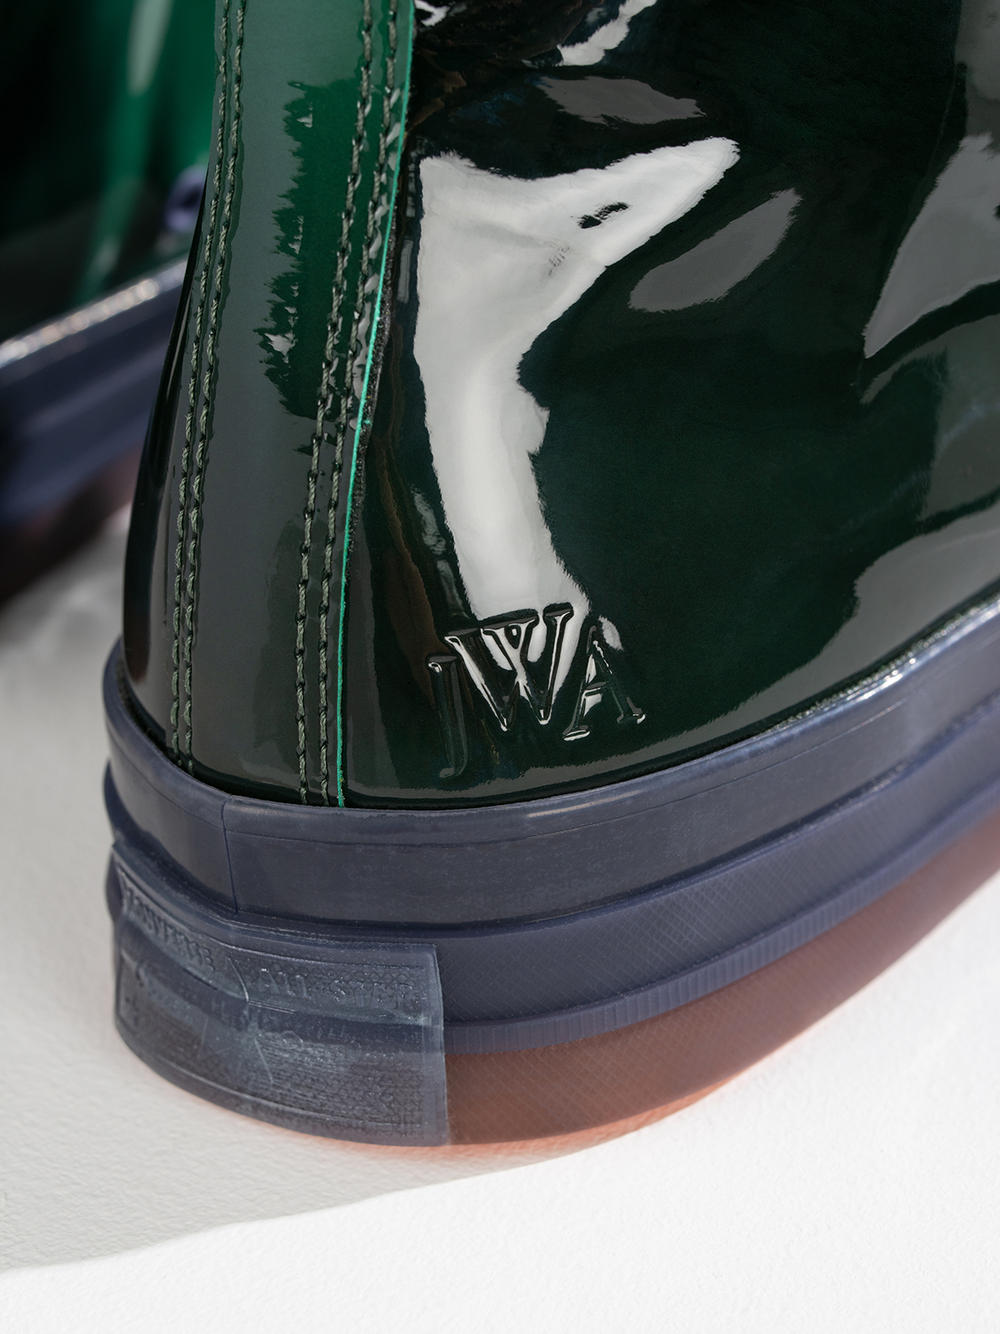 J.W.Anderson x Converse Chuck 70 Toy JWA Footwear Sneakers London RTW UK Taylor All Star Release Information Pop-Up Event Jonathan Anderson